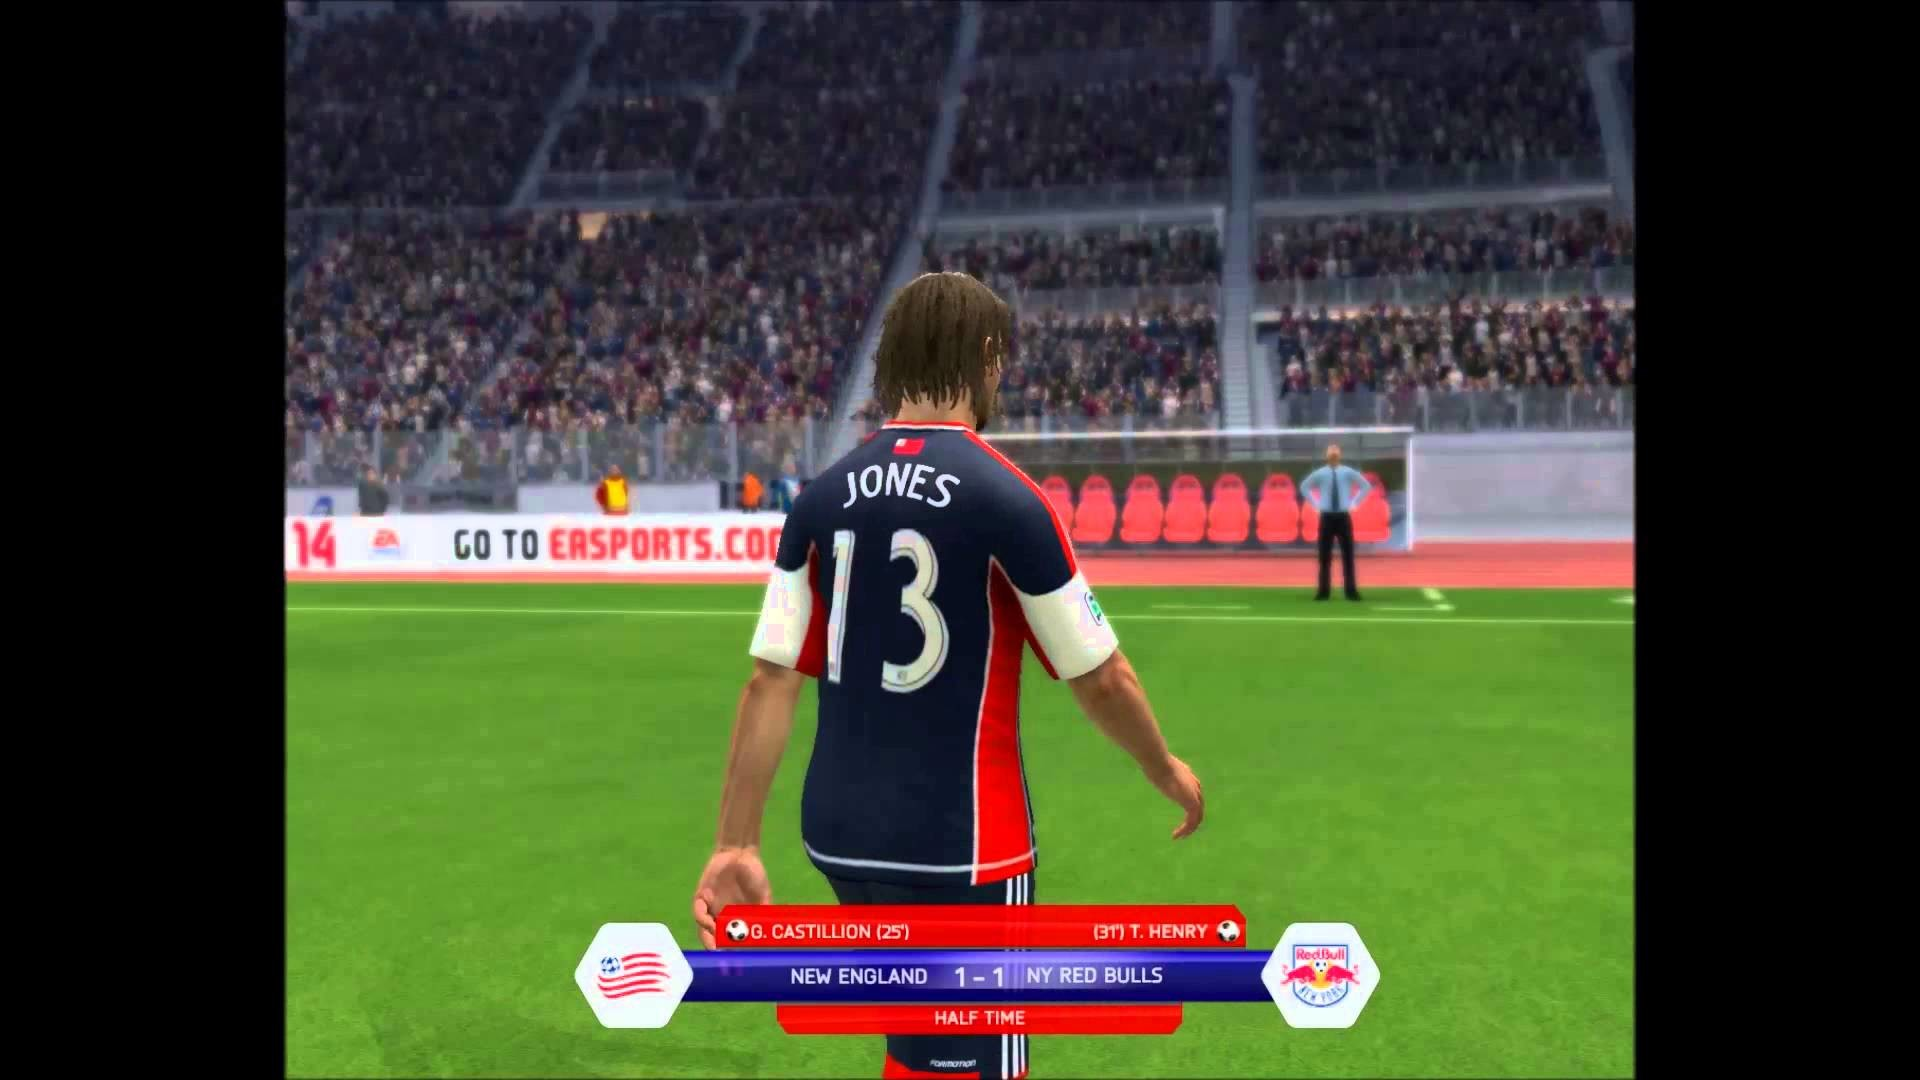 1920x1080 FIFA 14 Gameplay - New England Revolution vs New York Red Bulls